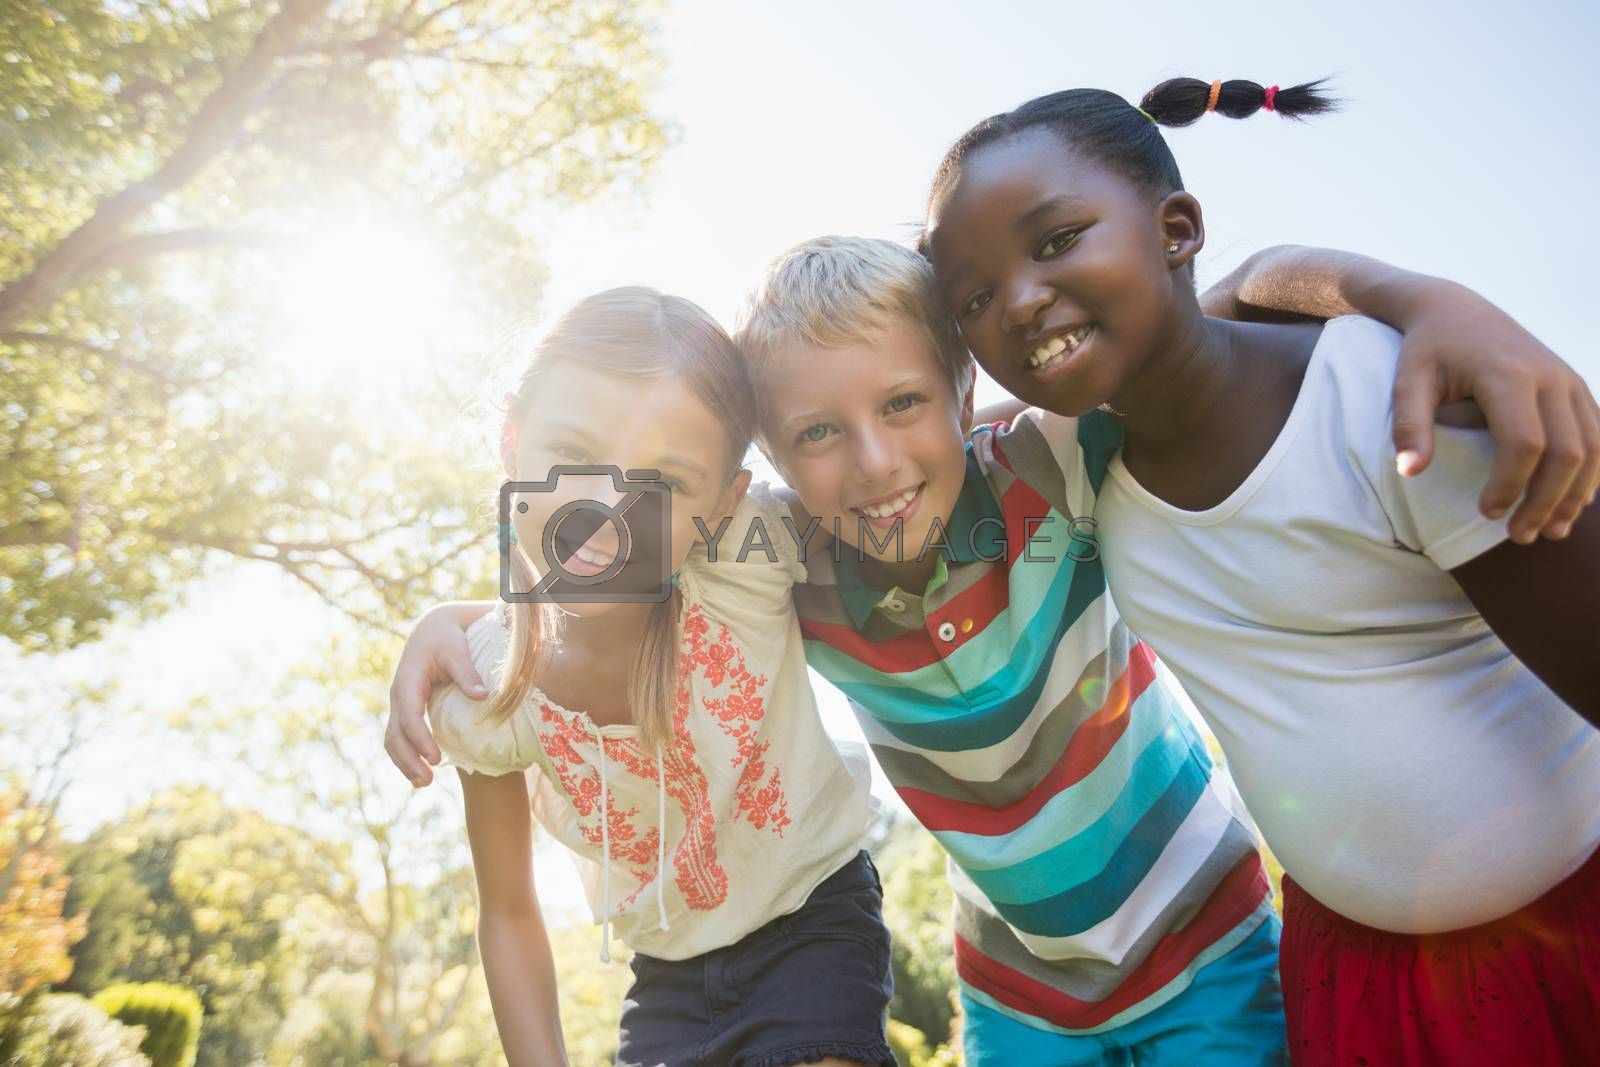 Kids posing together during a sunny day at camera at park